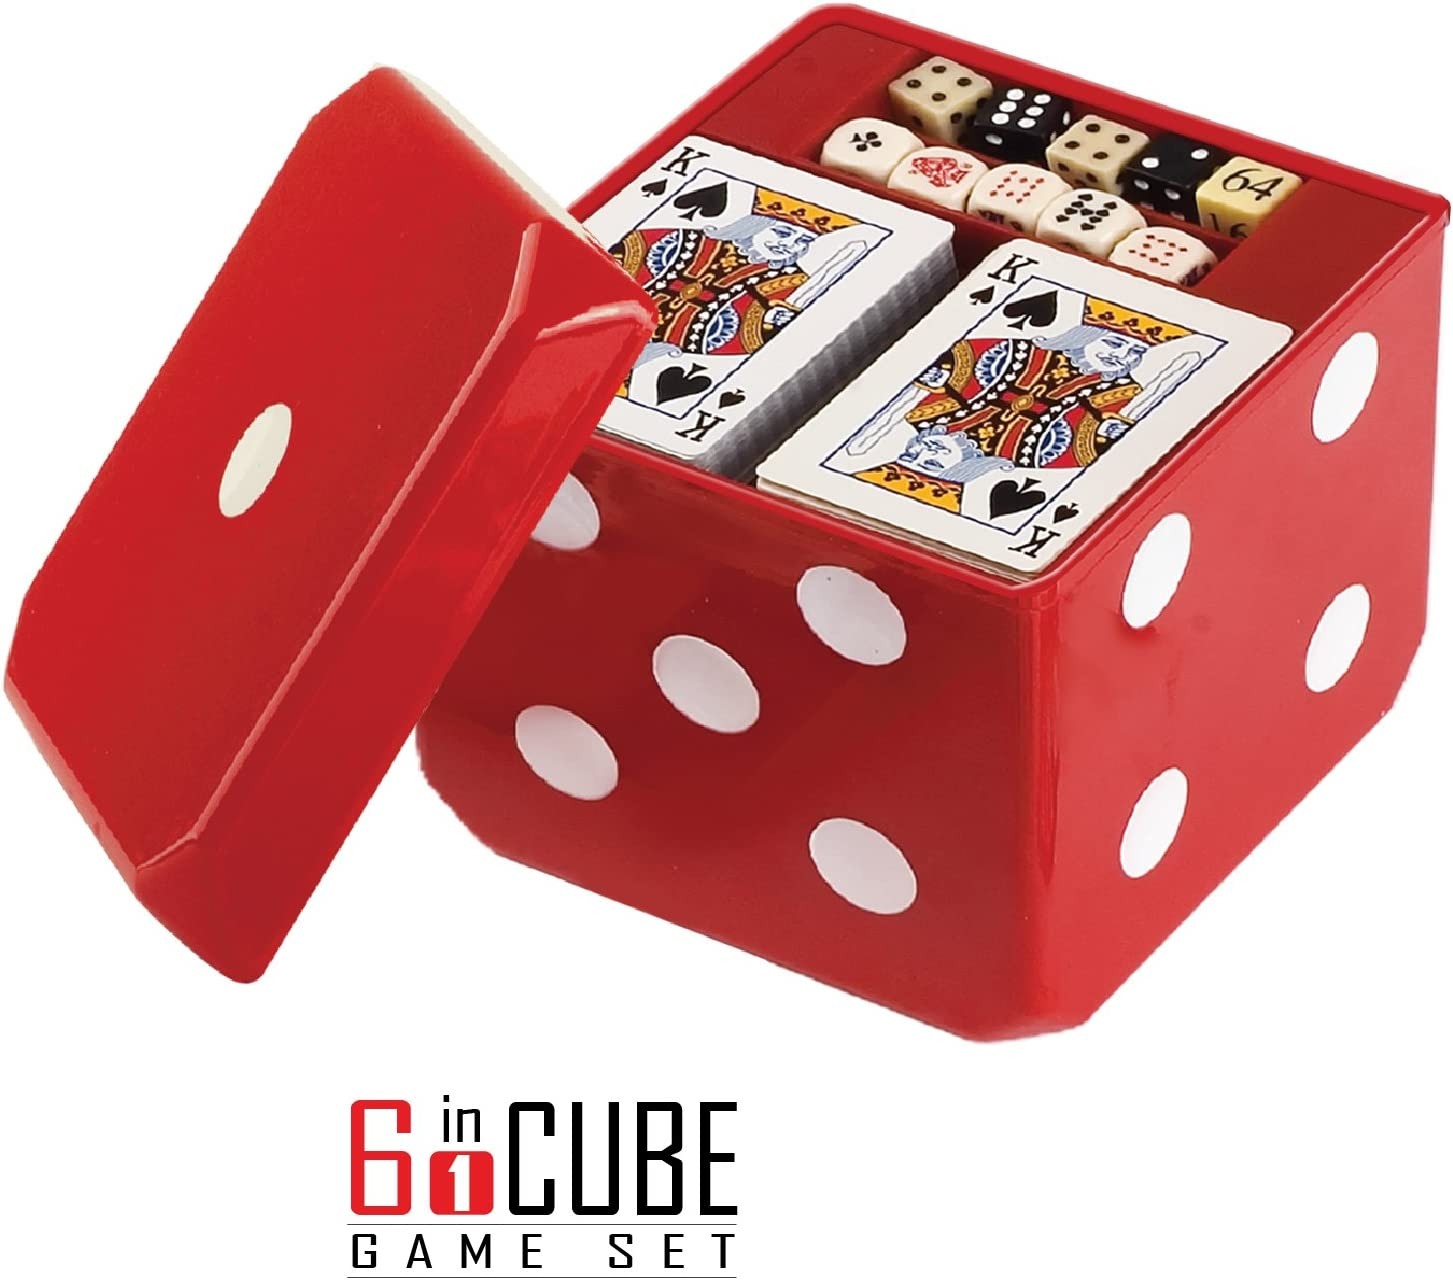 Gamie 6-in-1 Dice Cube Game Set Board Game and Casino Set – Includes Chess, Checkers and Backgammon, 2 Decks of Playing Cards, Poker Chips, Poker Dice and Dominoes - Complete Kit for Family Fun